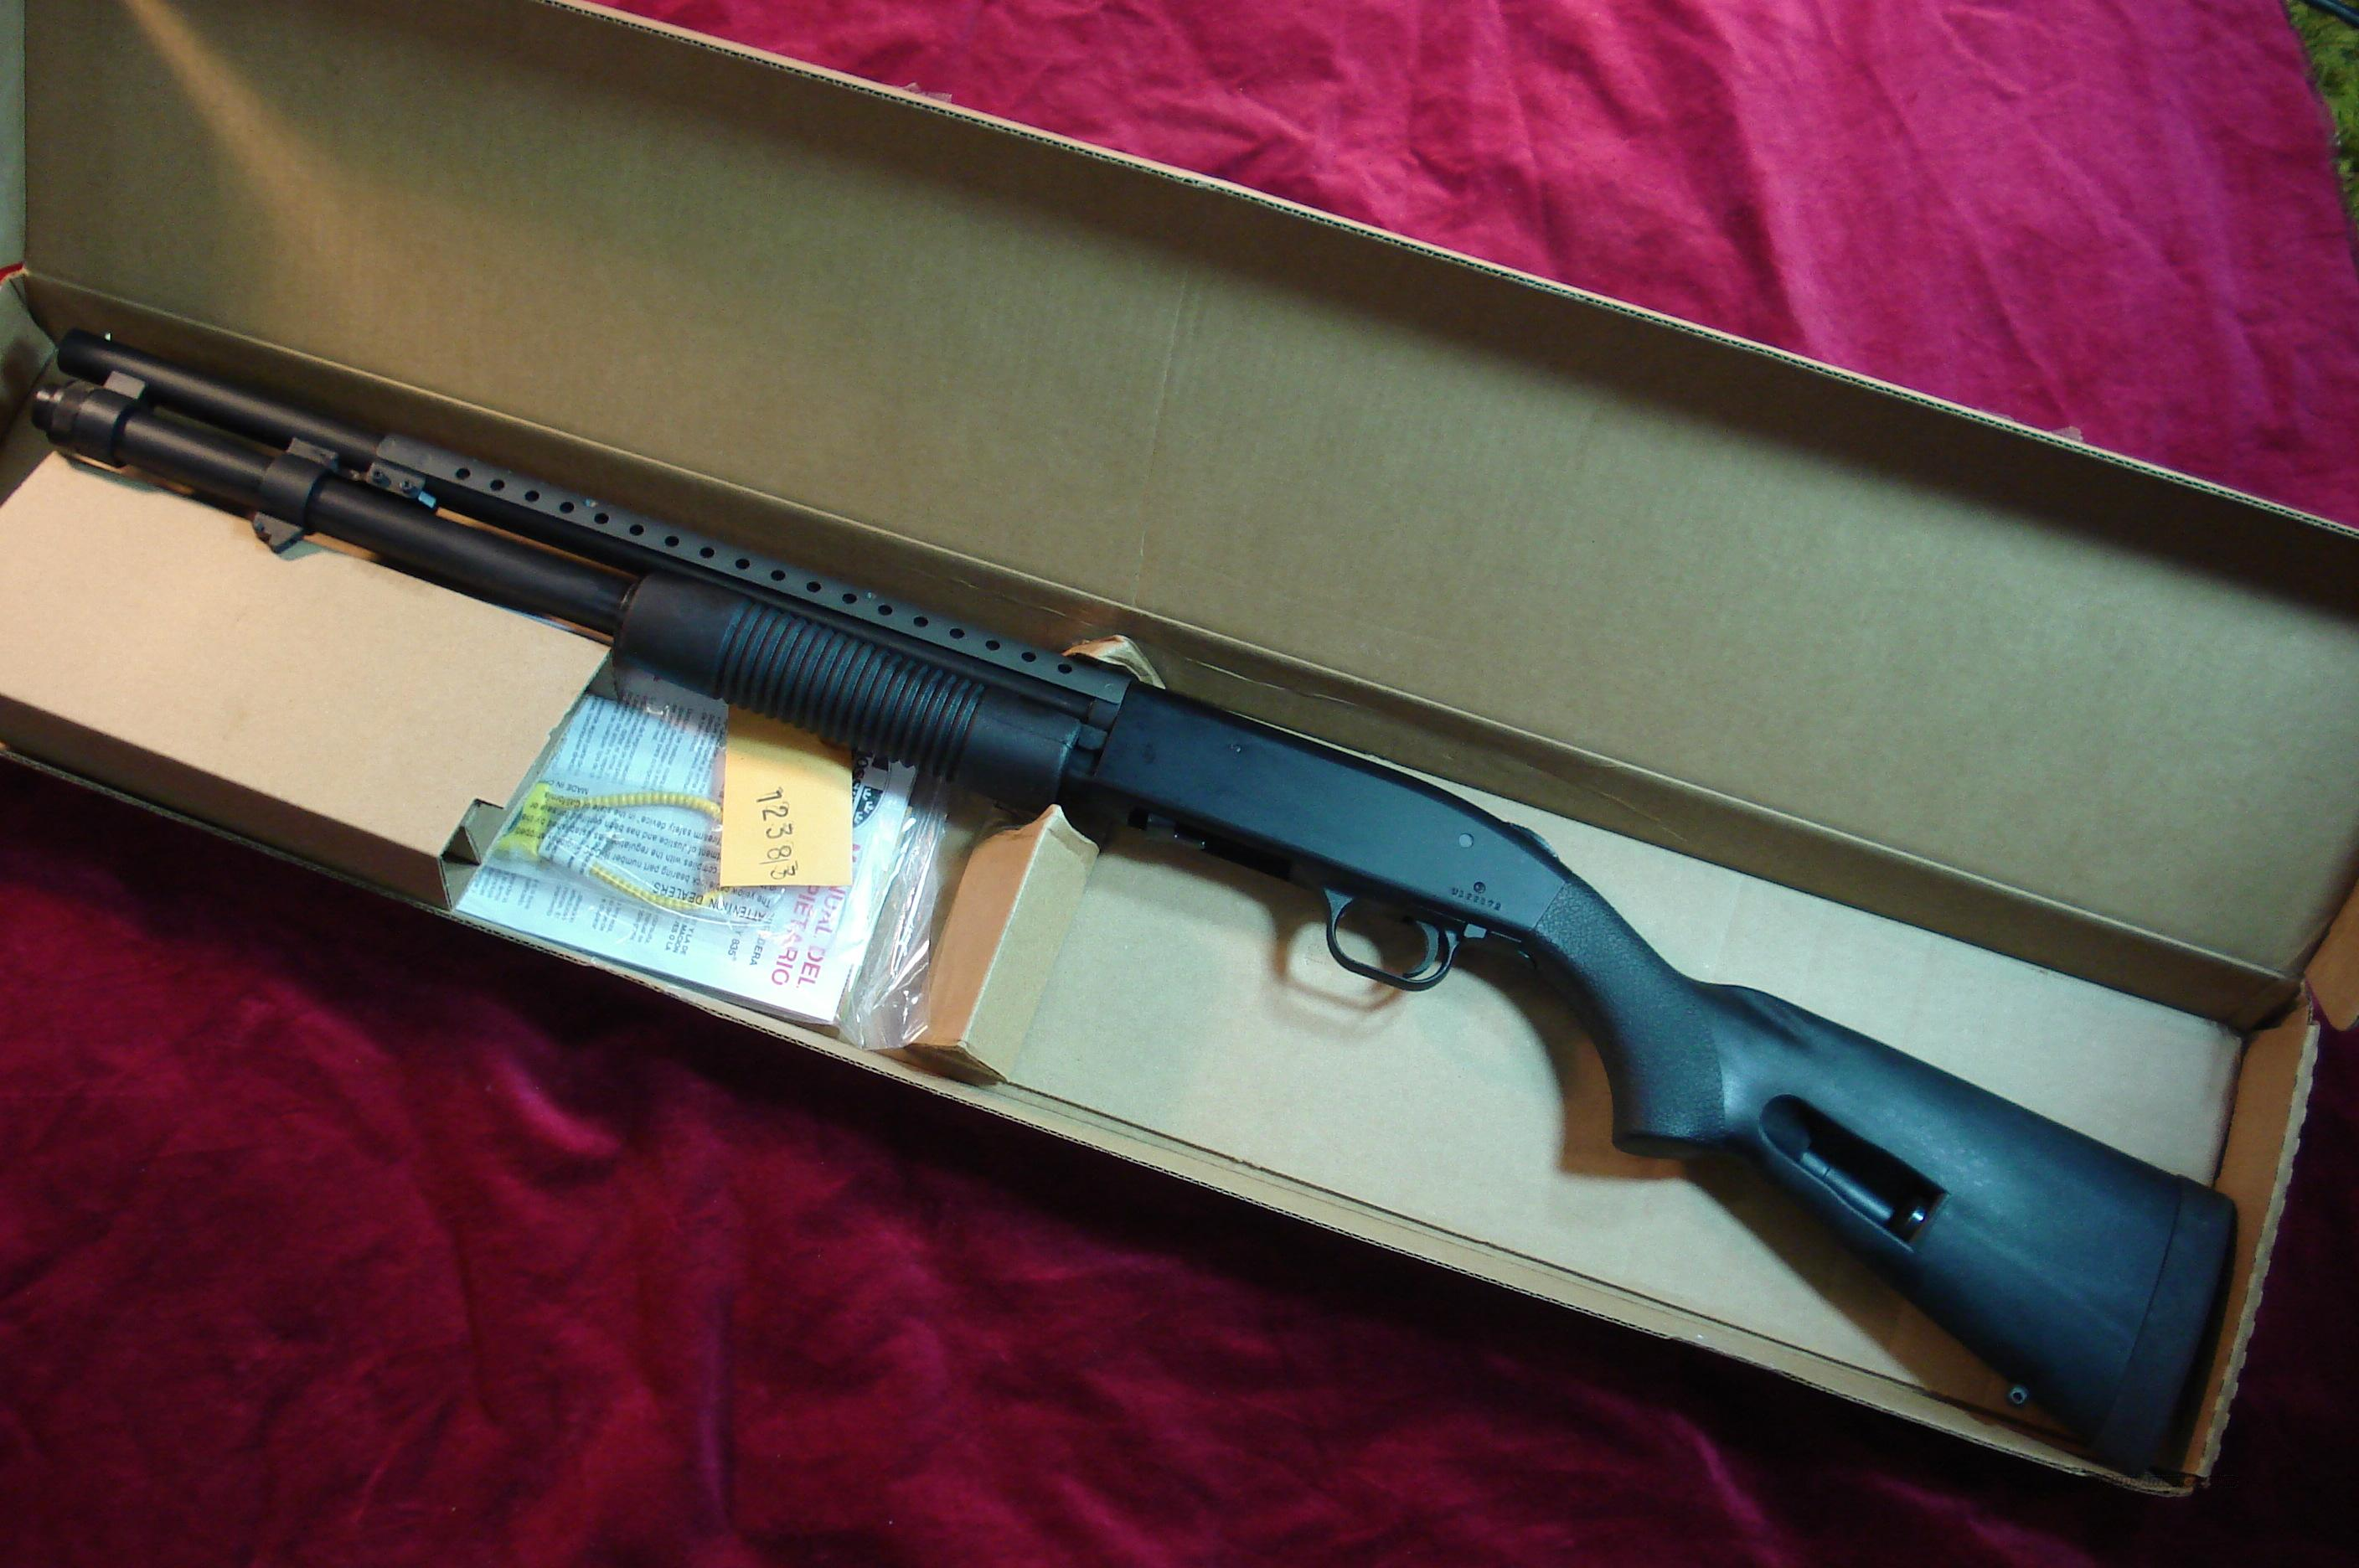 MOSSBERG 590 PERSUADER 12G W/SPEED FEED STOCK,HEAT SHIELD AND MAG. EXTENTION NEW  Guns > Shotguns > Mossberg Shotguns > Pump > Tactical